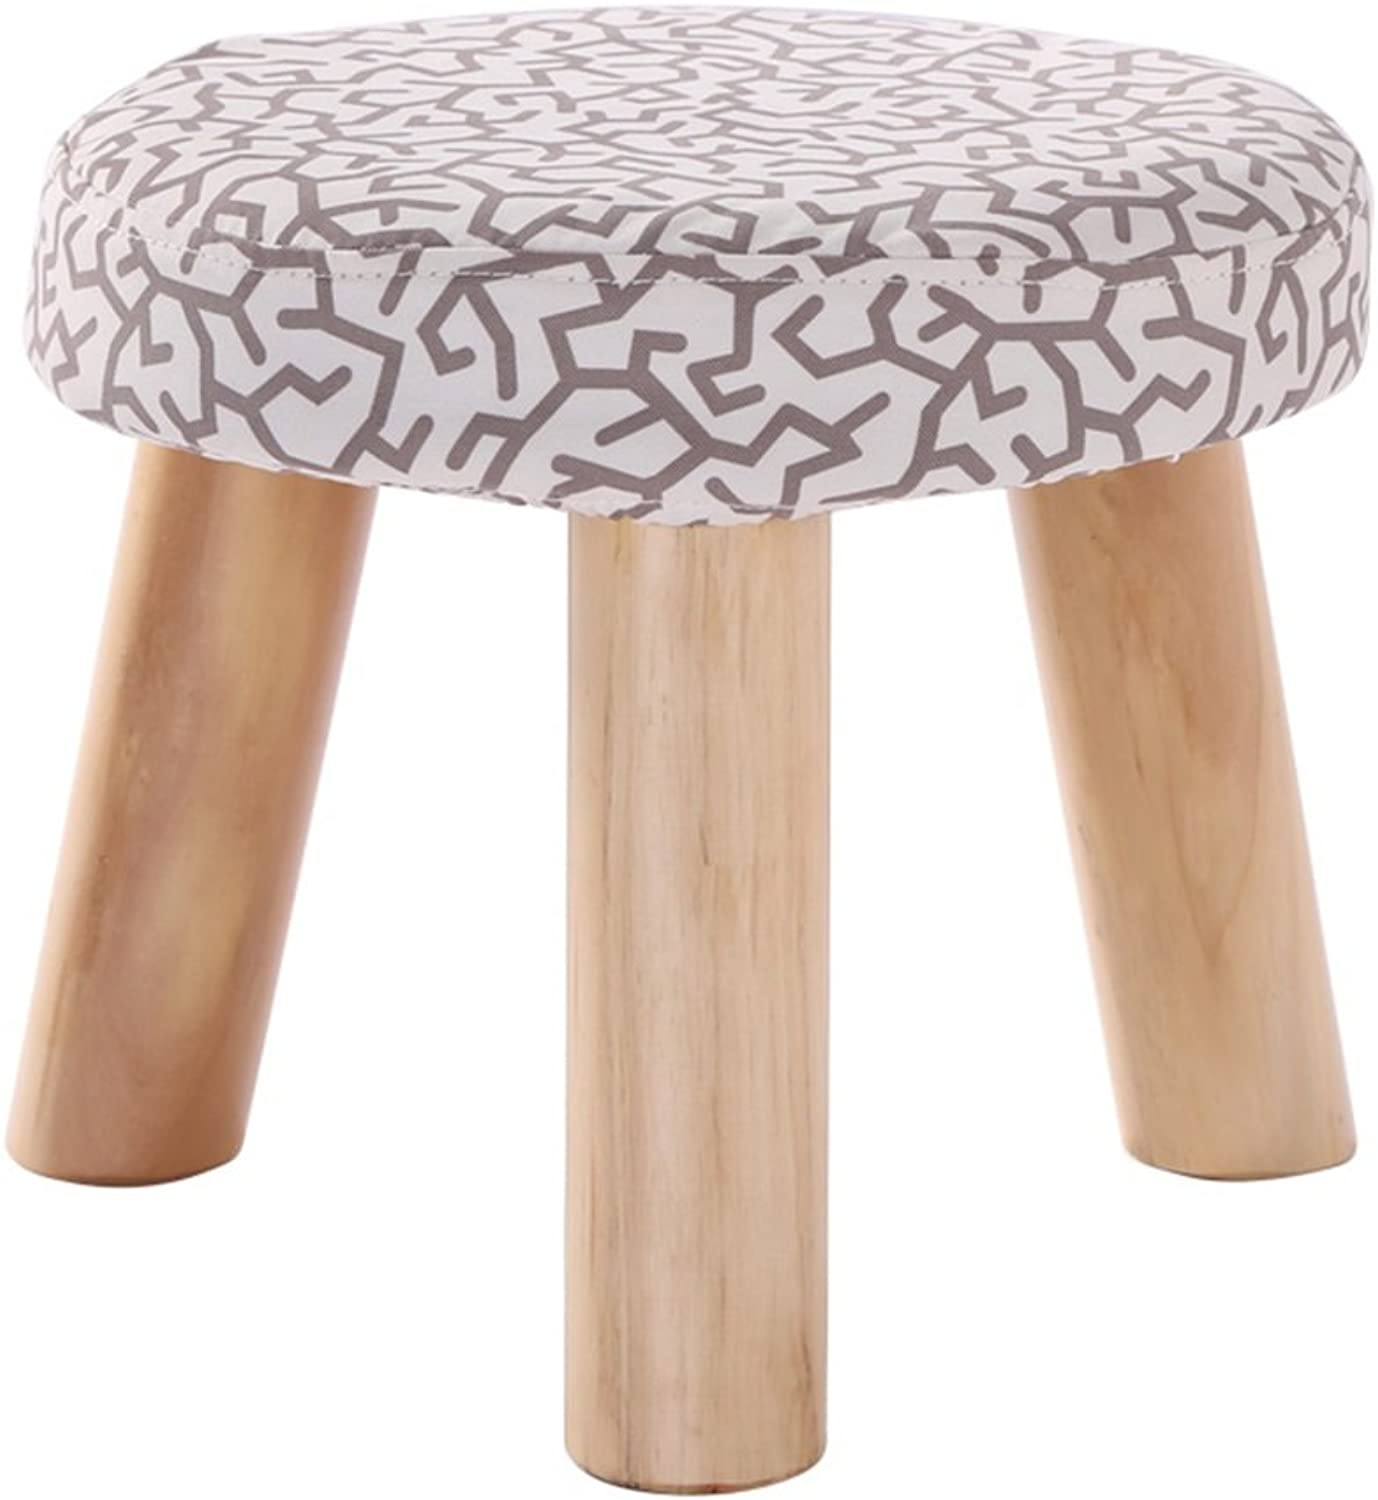 Special Solid Wood Stools Cotton and Linen Benches Low Stools shoes-Changing shoes Stools Washable Cloth Sets Household Small Stools 3 Legs (color   H)